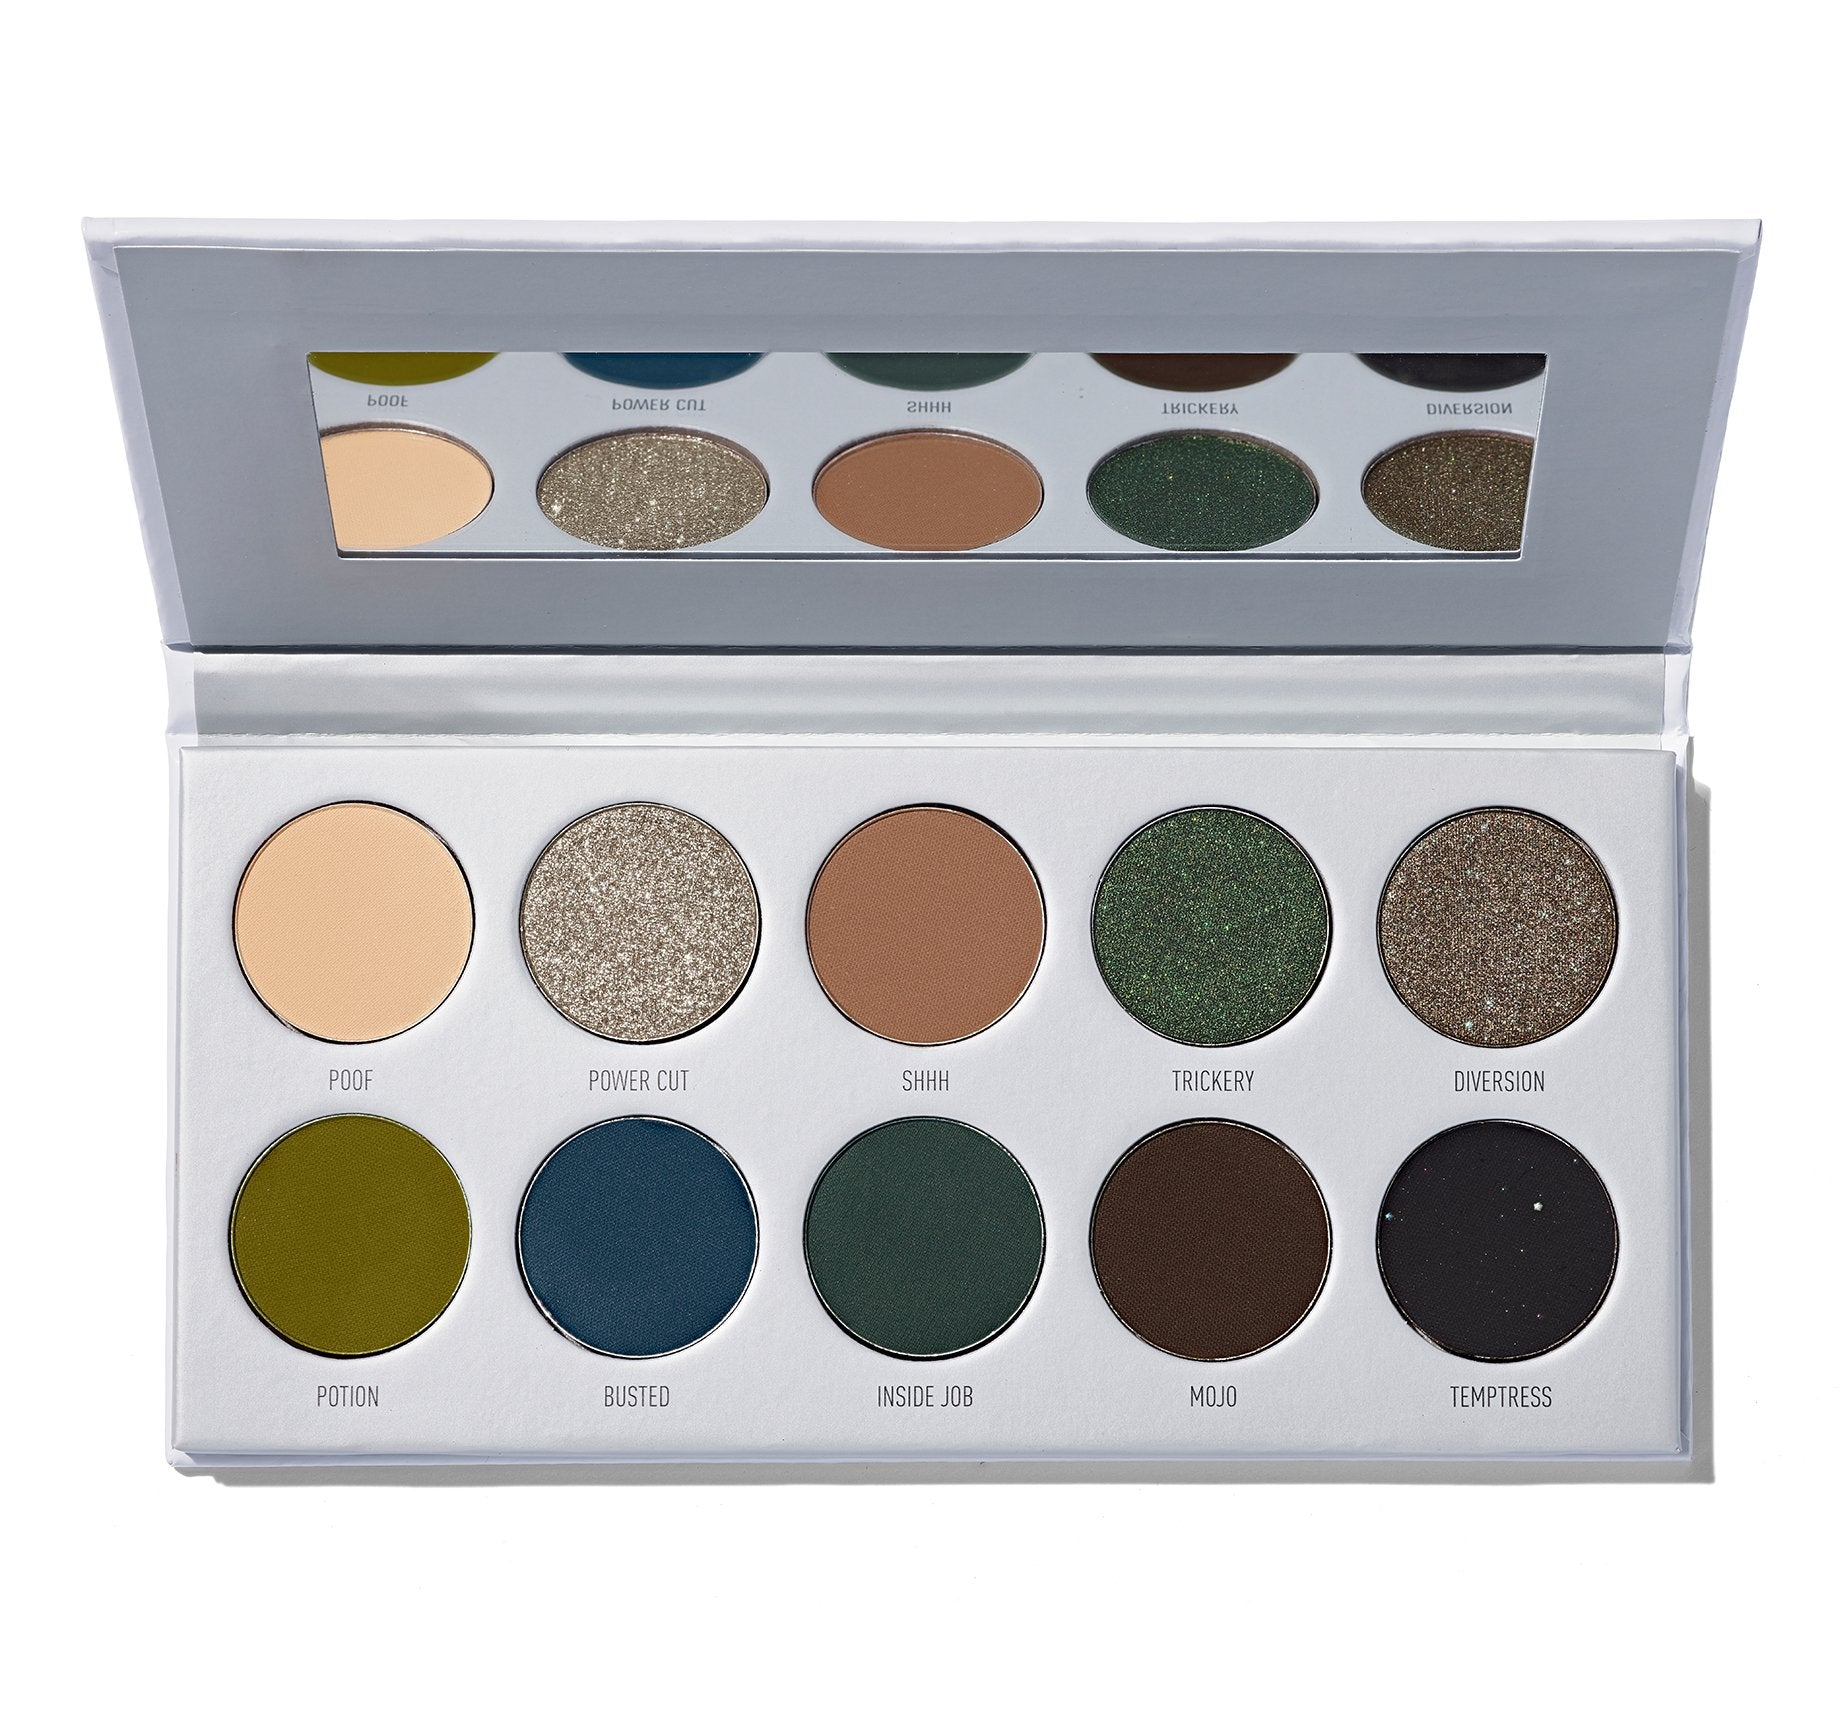 MORPHE X JACLYN HILL DARK MAGIC EYESHADOW PALETTE, view larger image